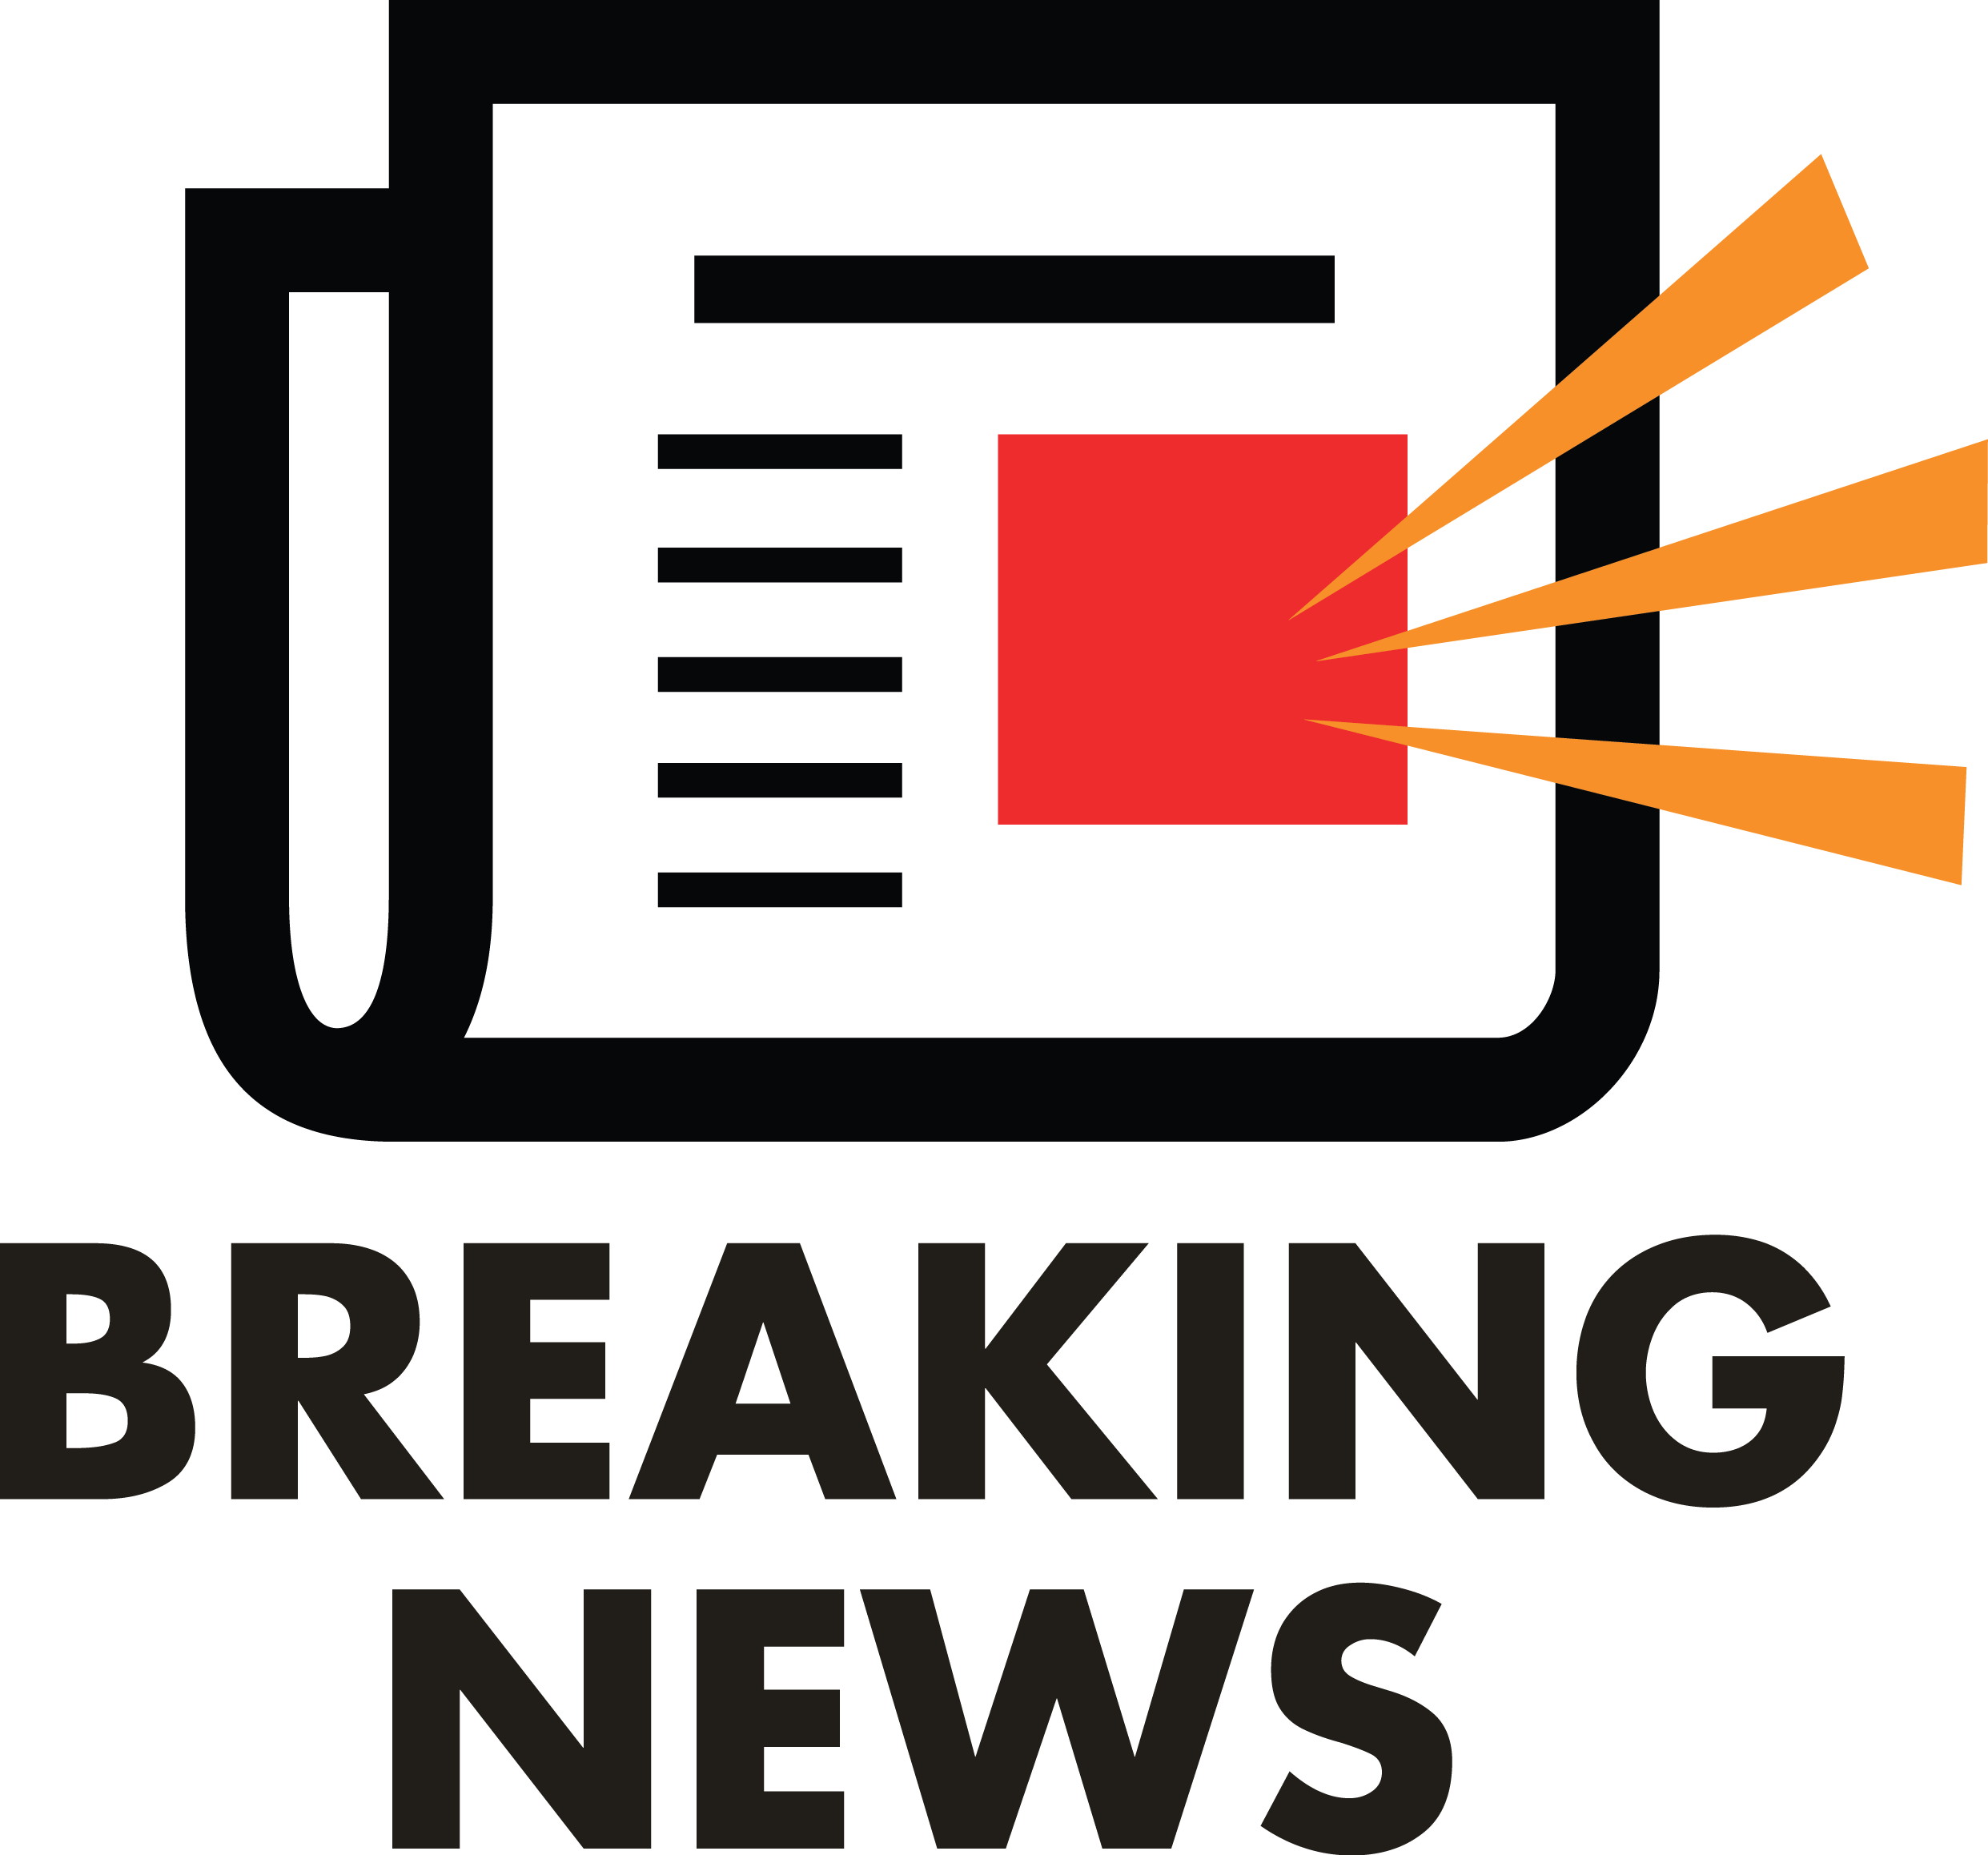 Newspaper clipart logo. Breaking news delaware judge